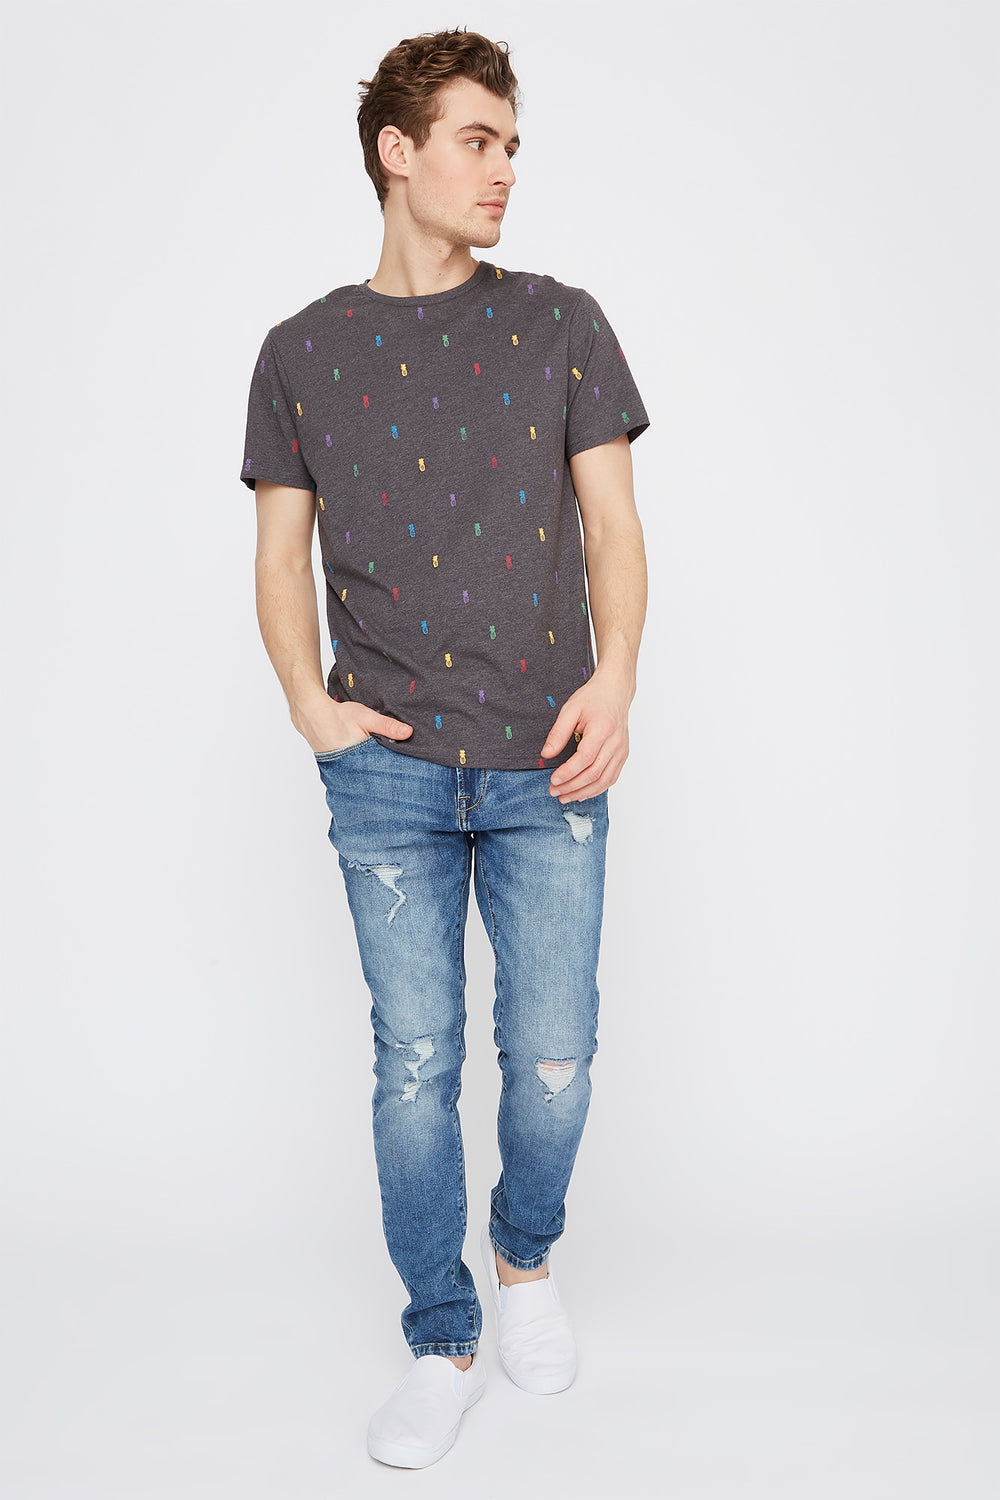 Micro Print Crew Neck T-Shirt Charcoal